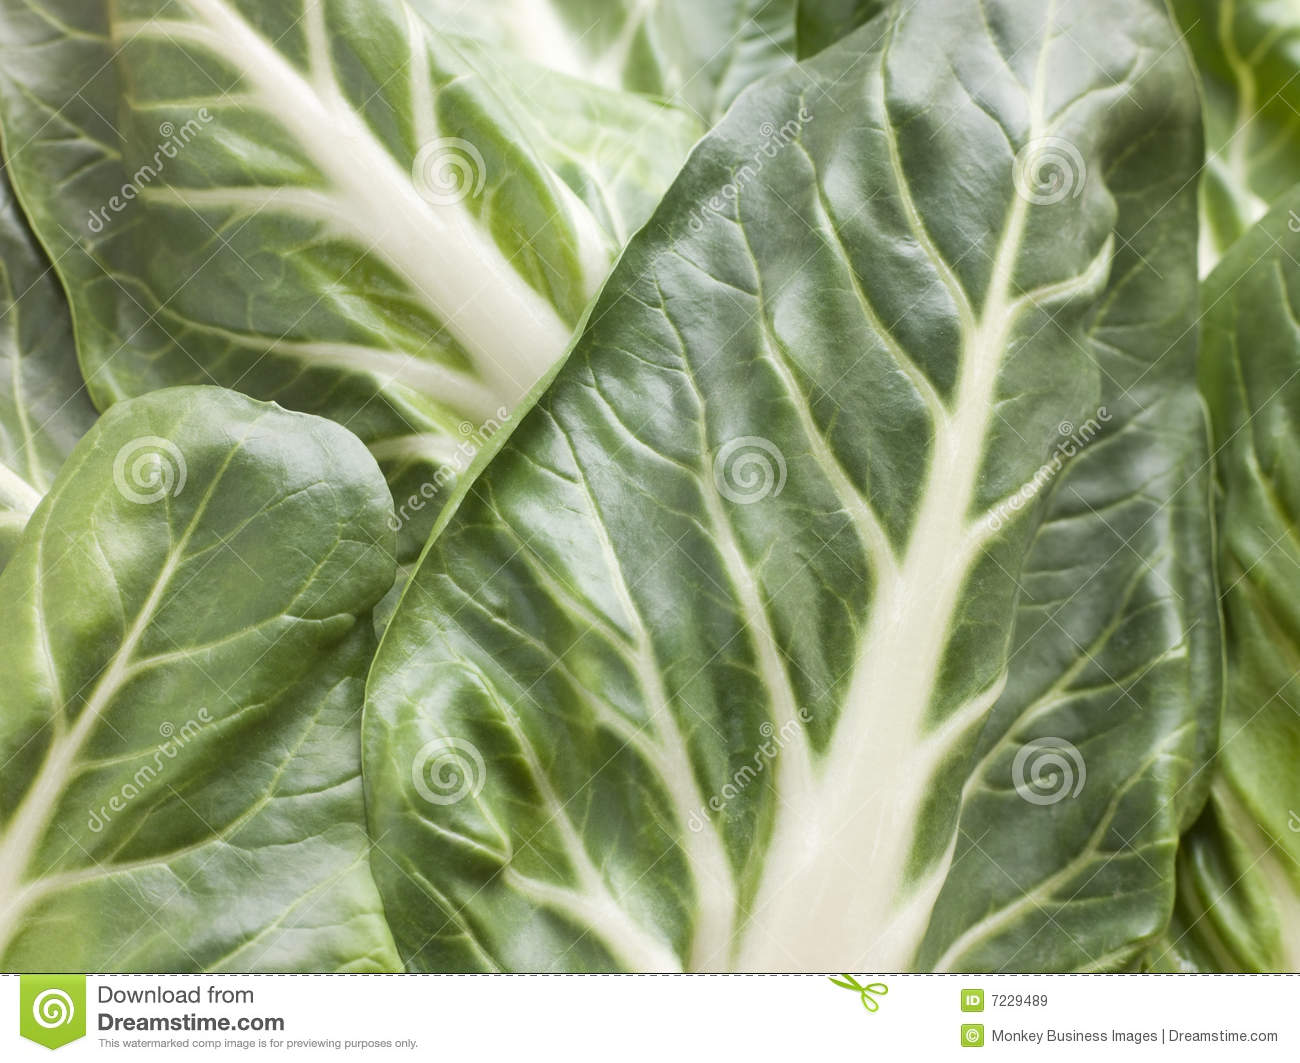 how to cook bok choy cabbage